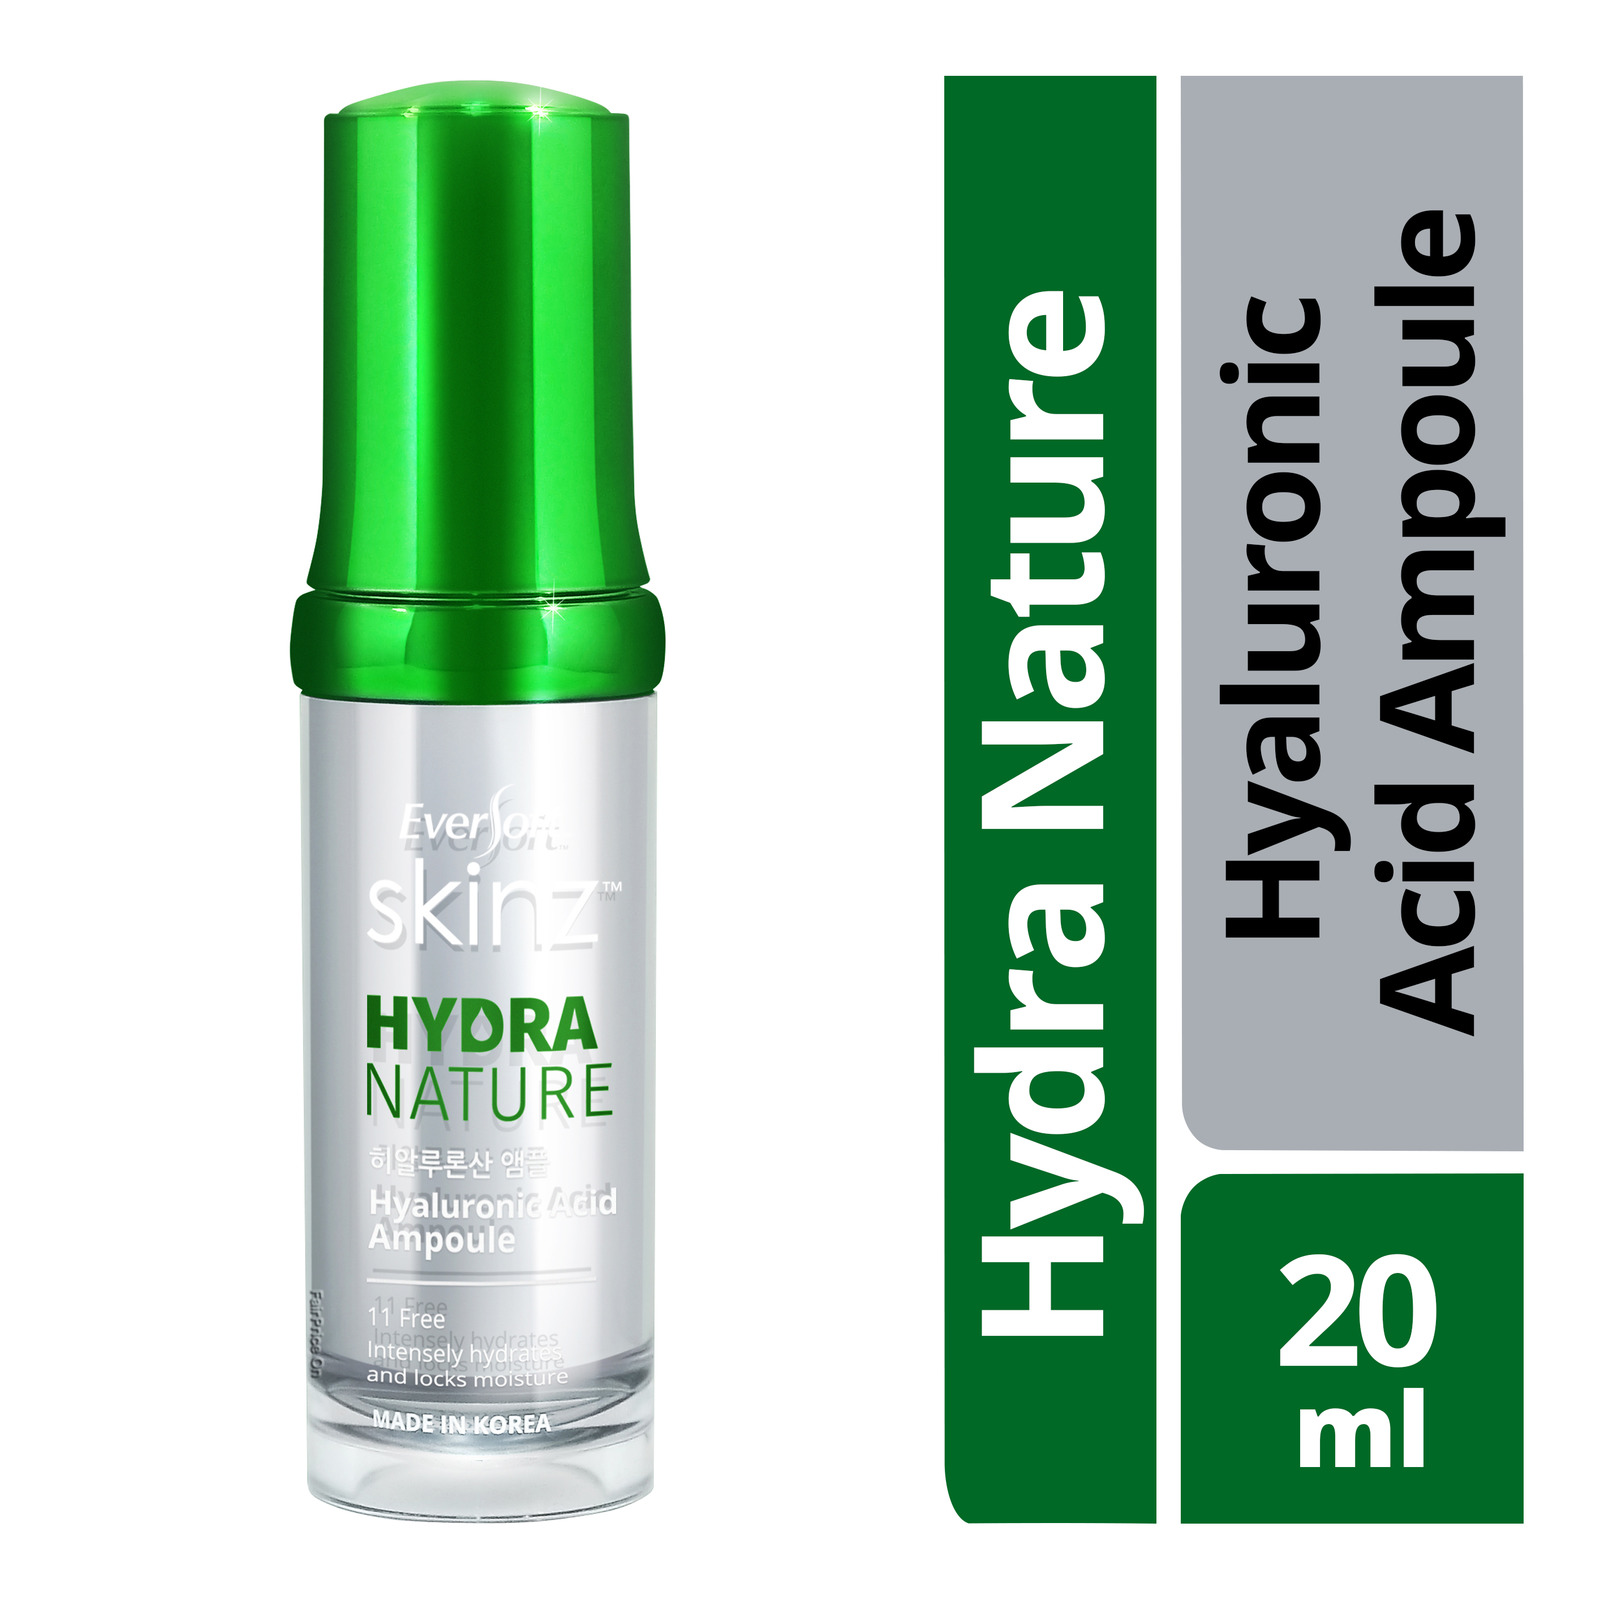 Eversoft Skinz Hydra Nature Hyaluronic Acid Ampoule